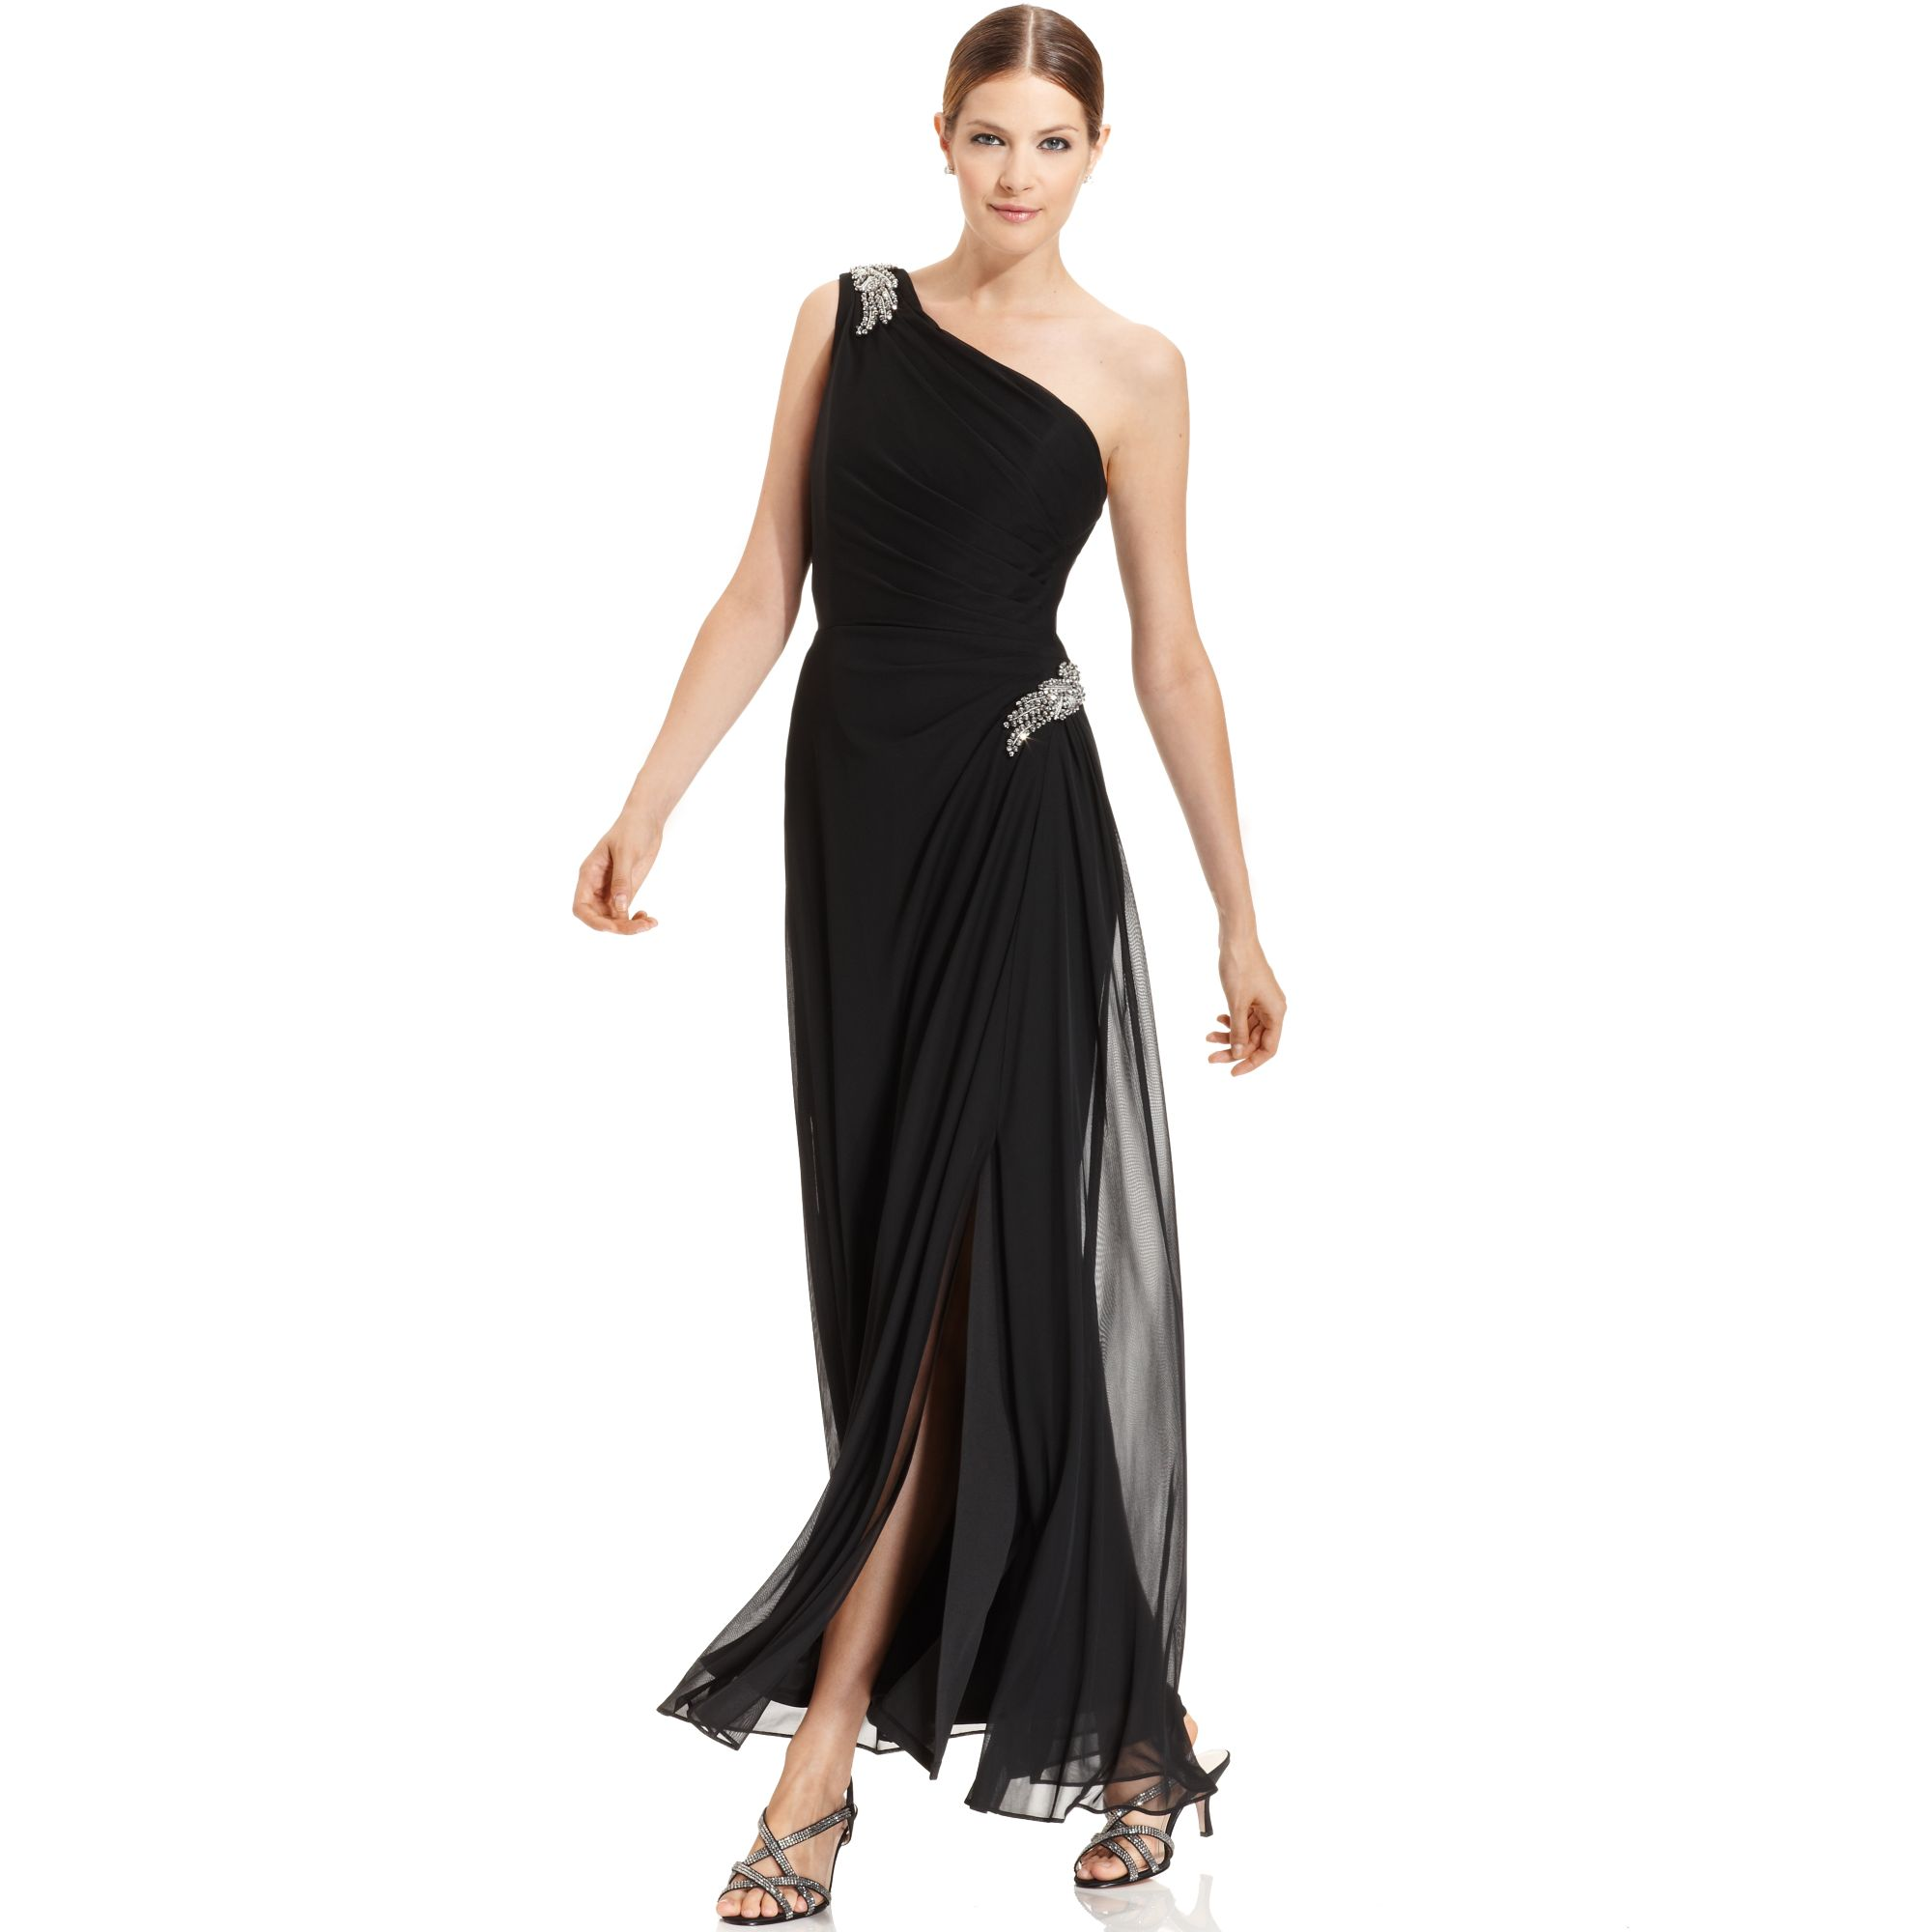 Lyst - Alex Evenings Sleeveless Oneshoulder Draped Gown in Black